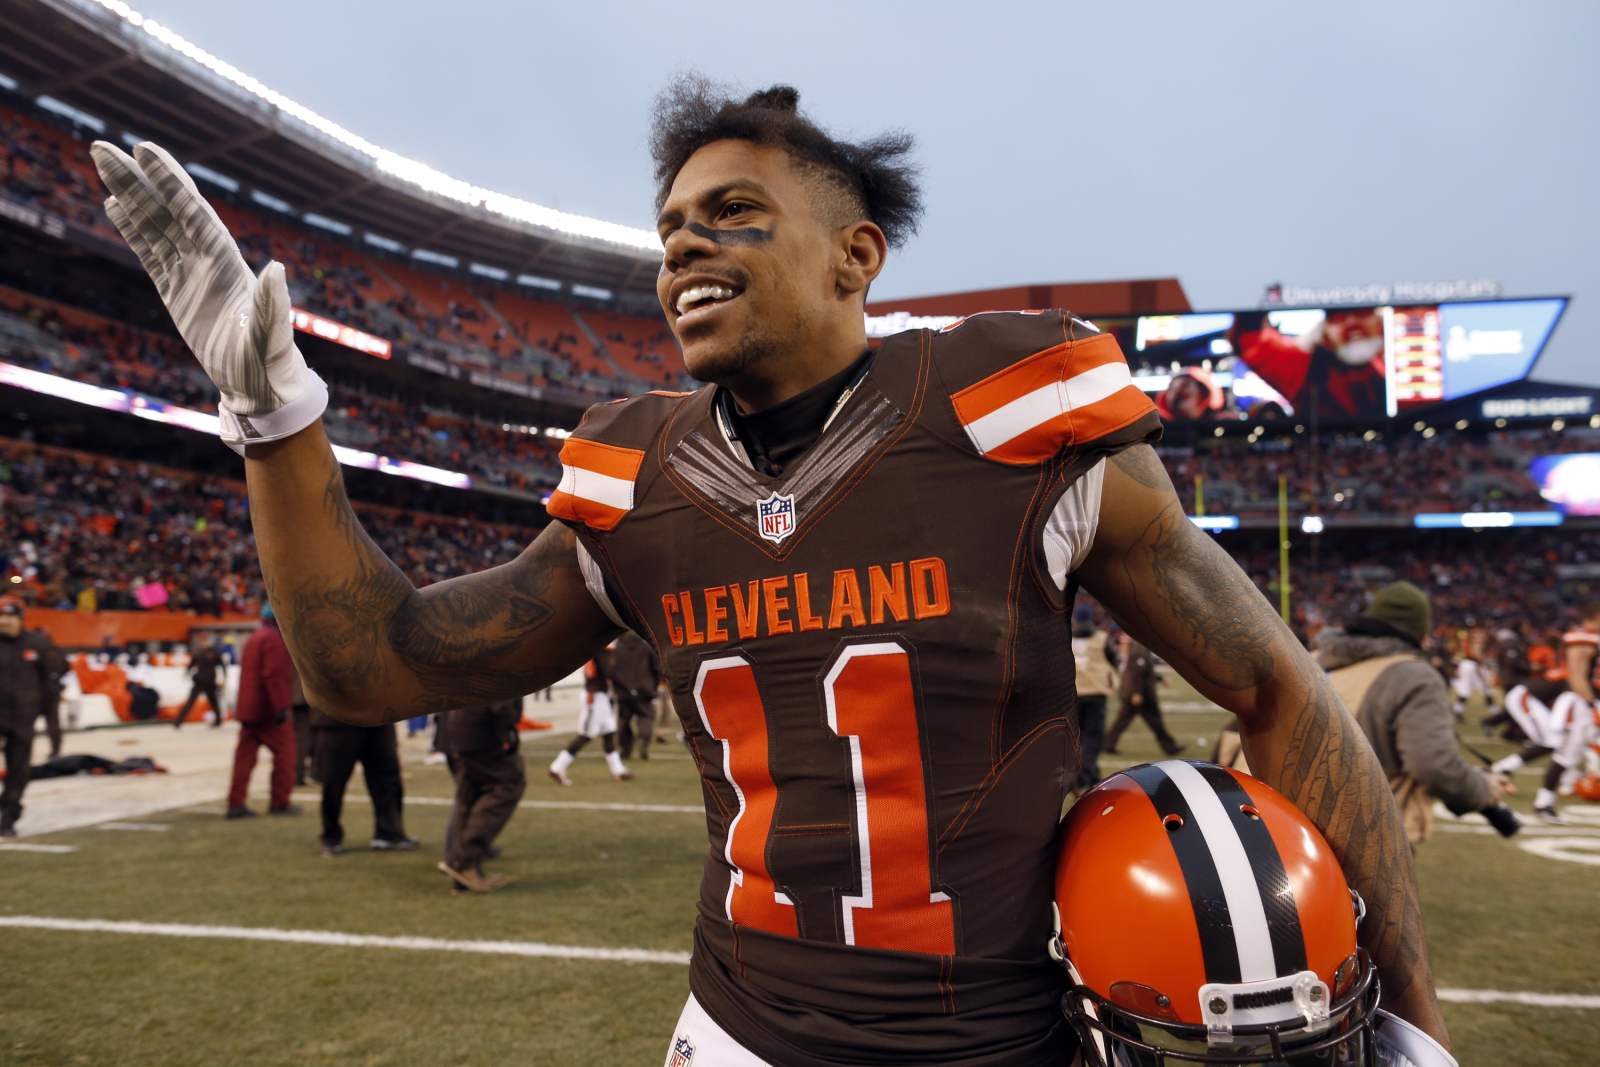 Former Cleveland Browns receiver Terrelle Pryor in critical condition